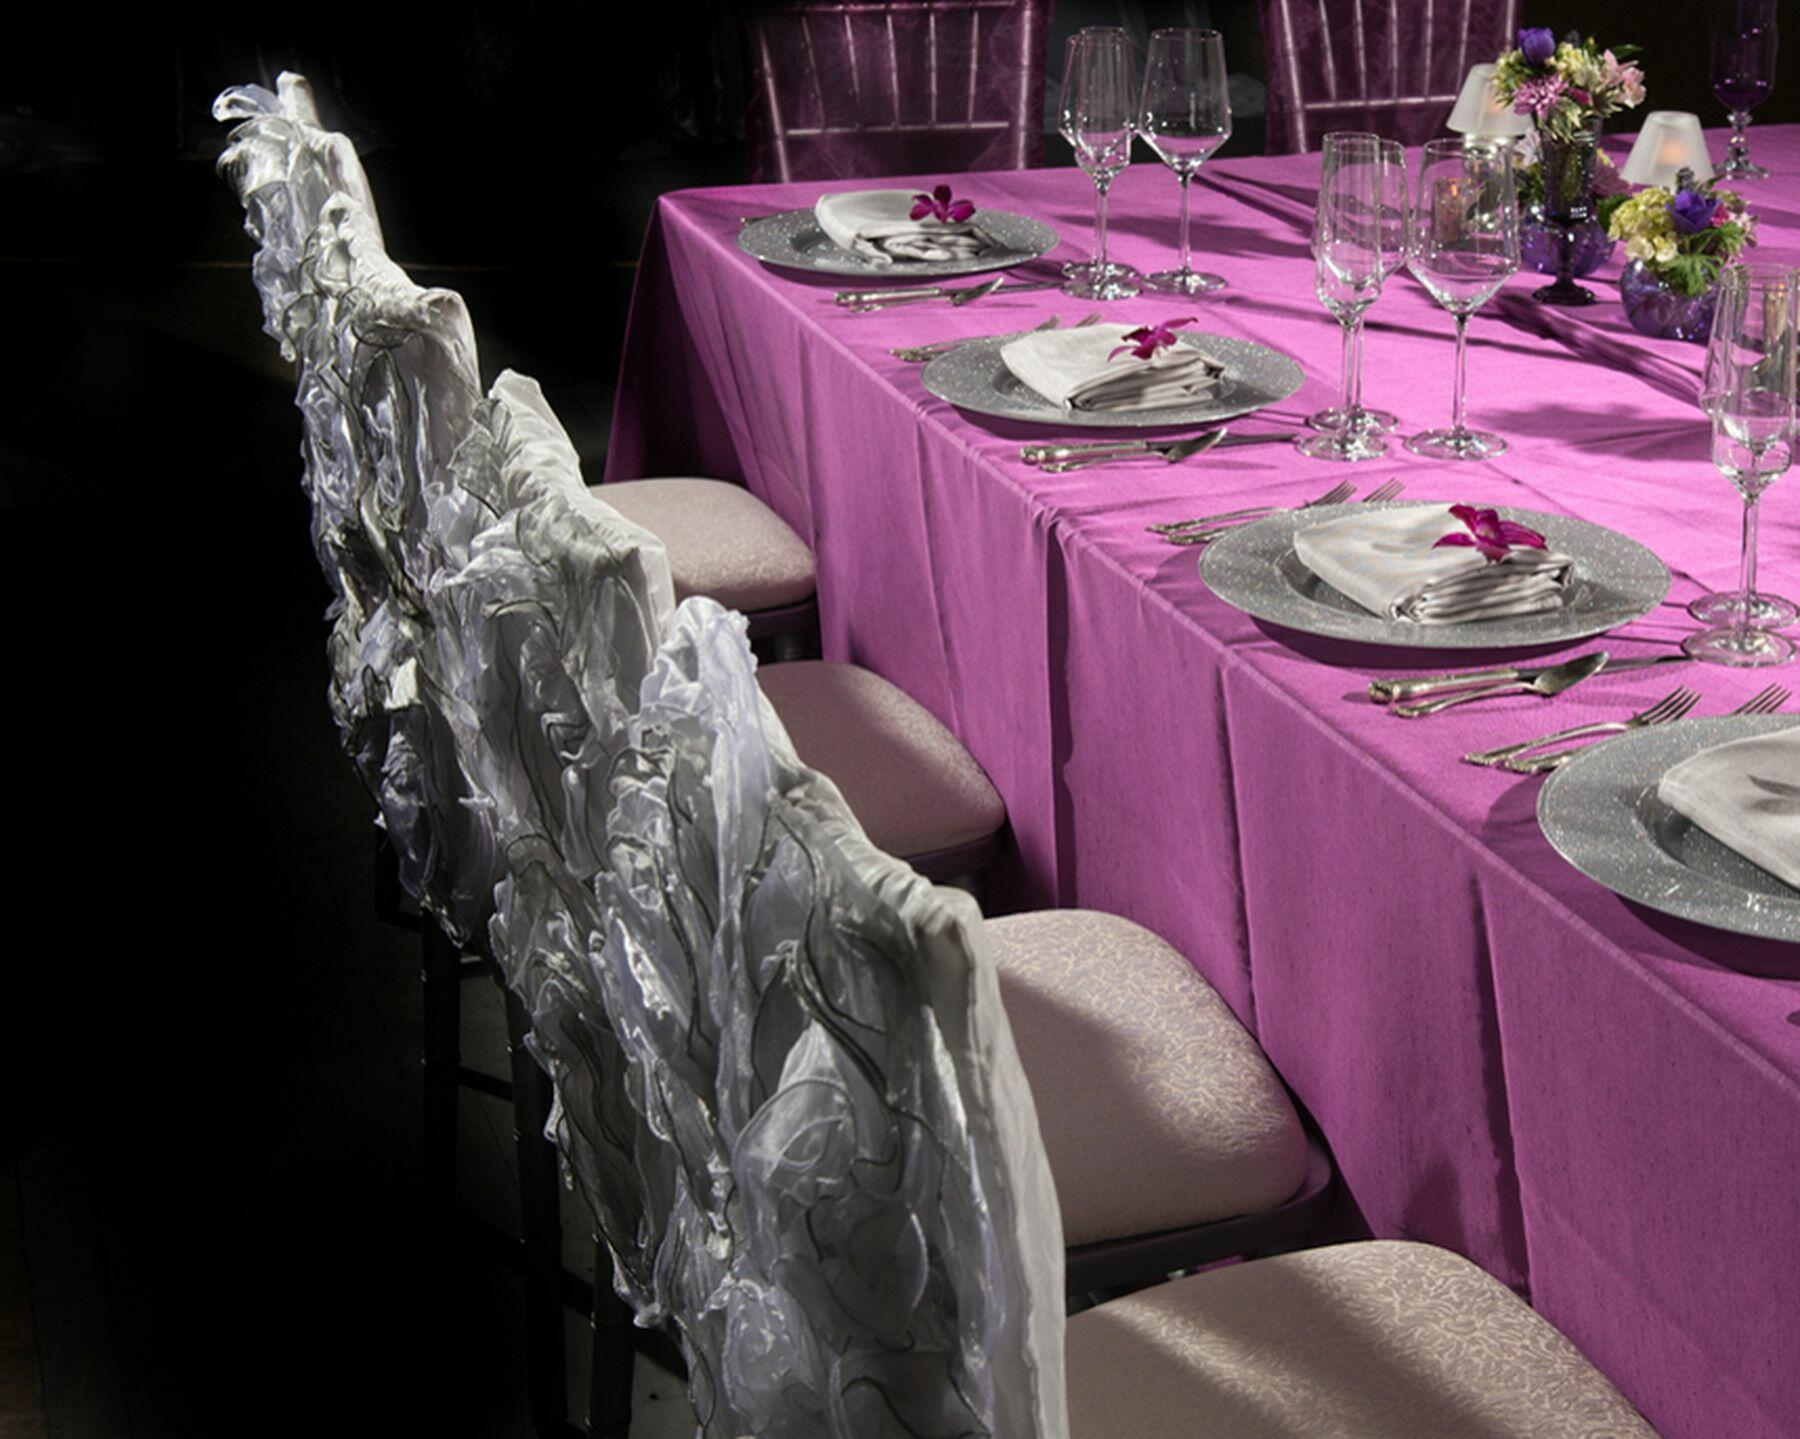 Wedding reception table with place settings and floral centerpie